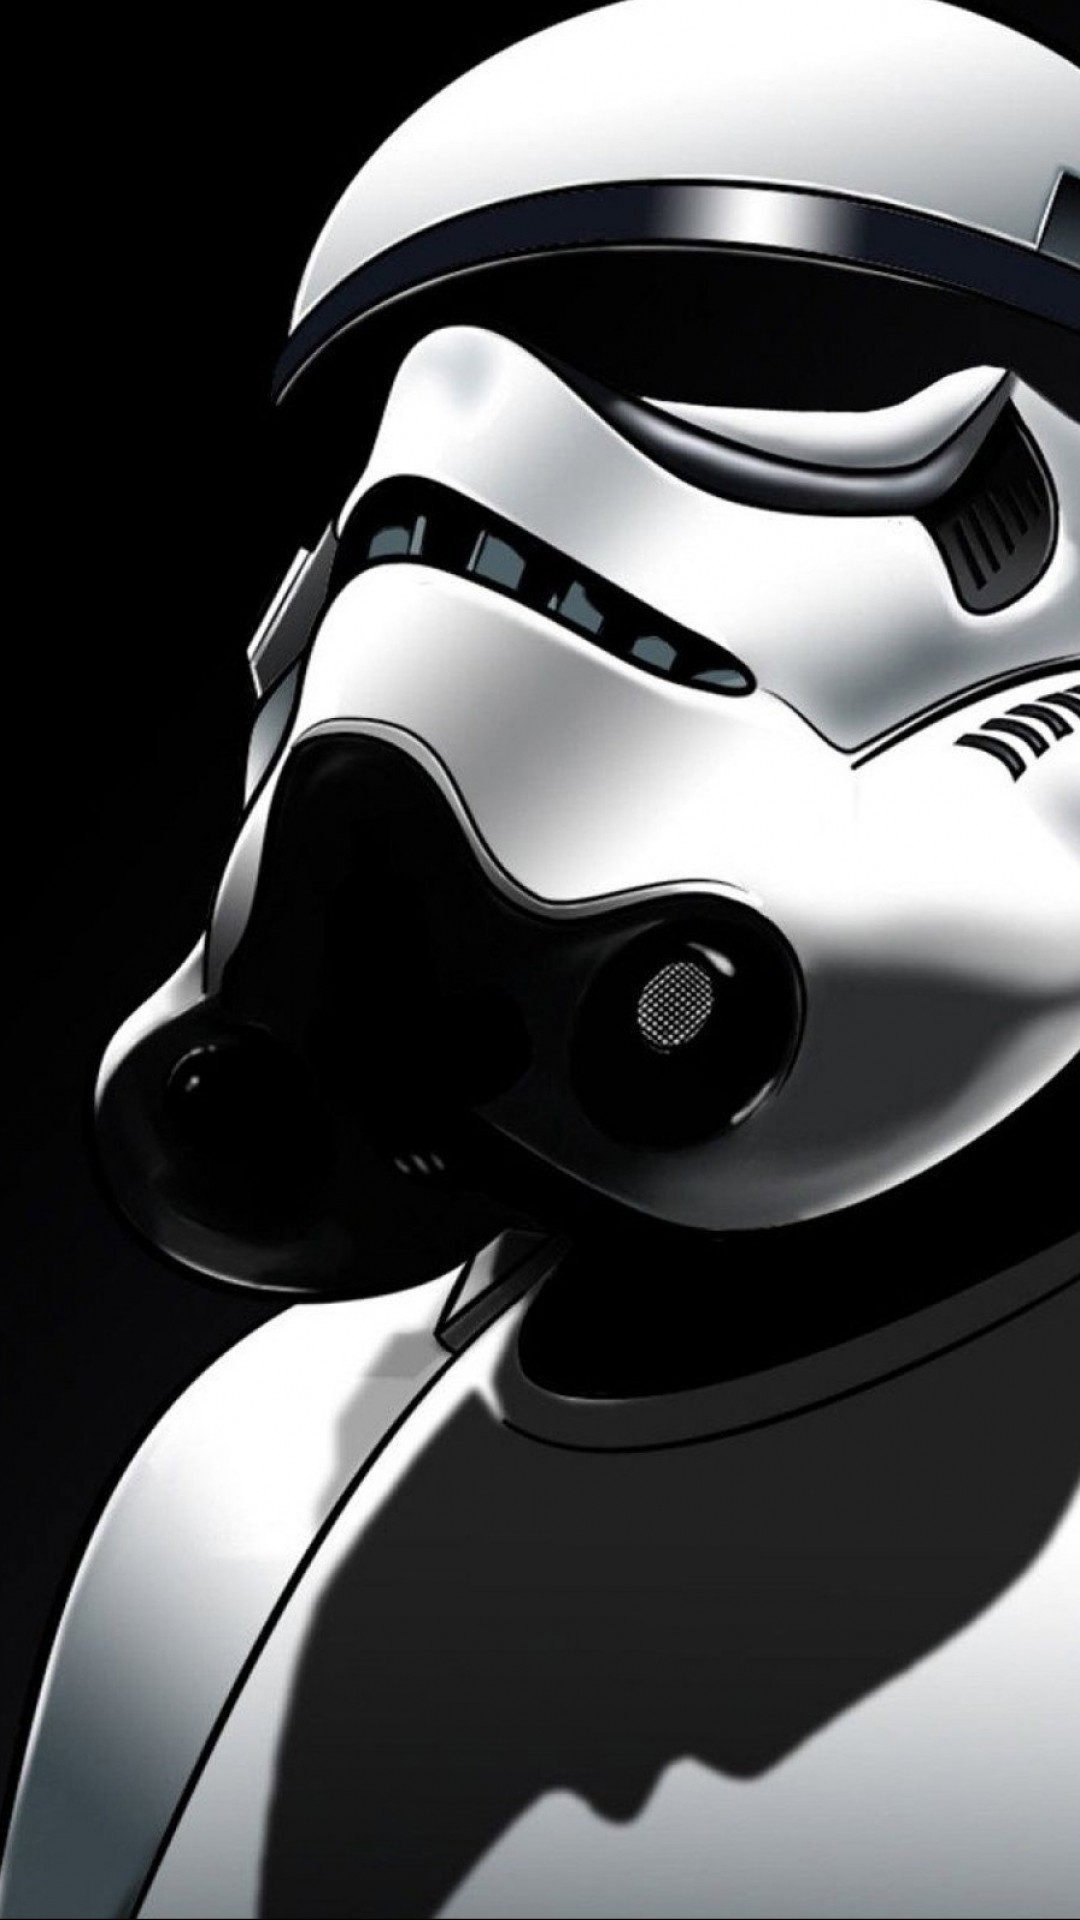 Star Wars iPhone Wallpaper HD 84+ images